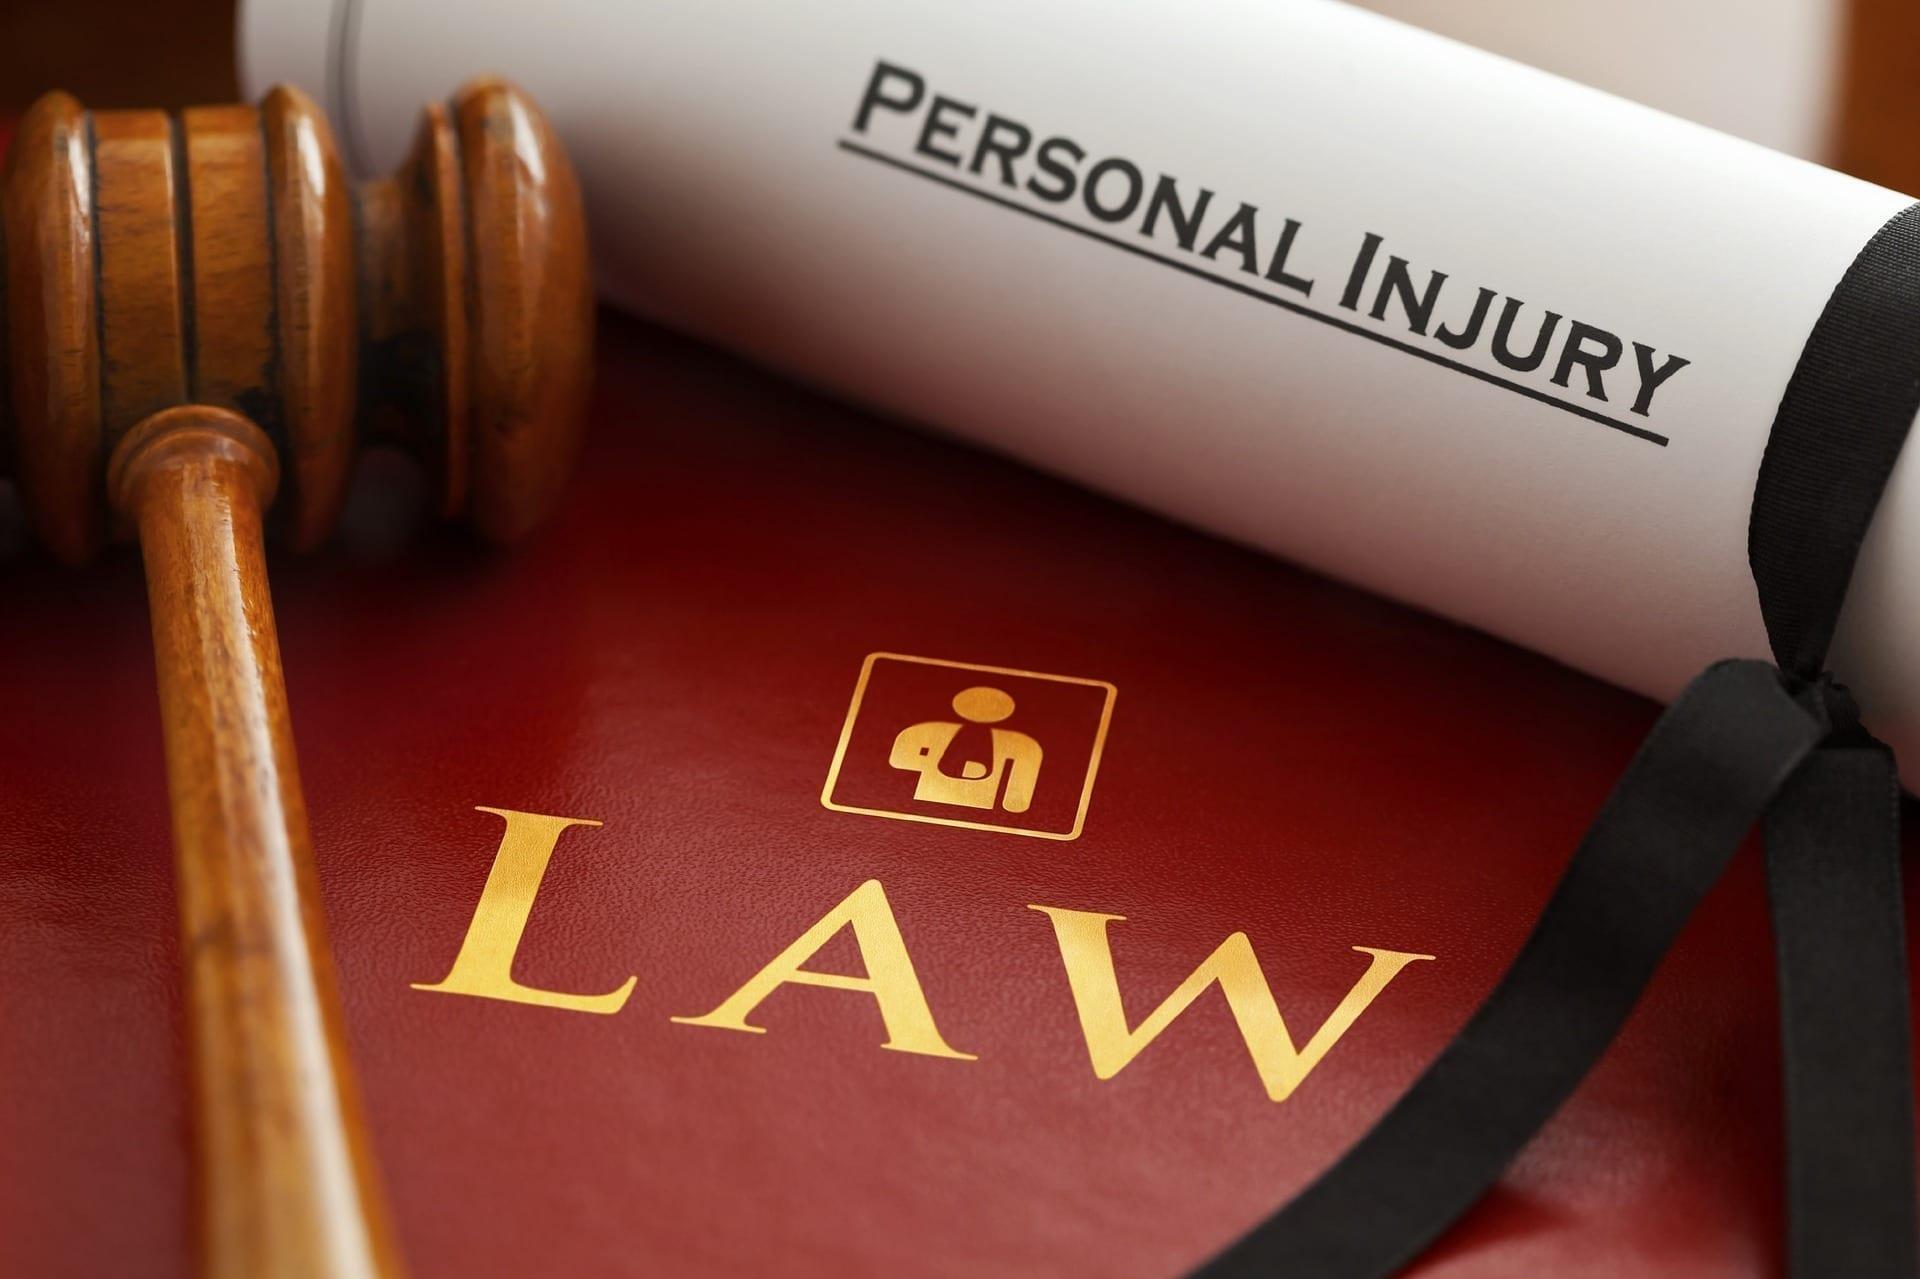 Personal injury law logo